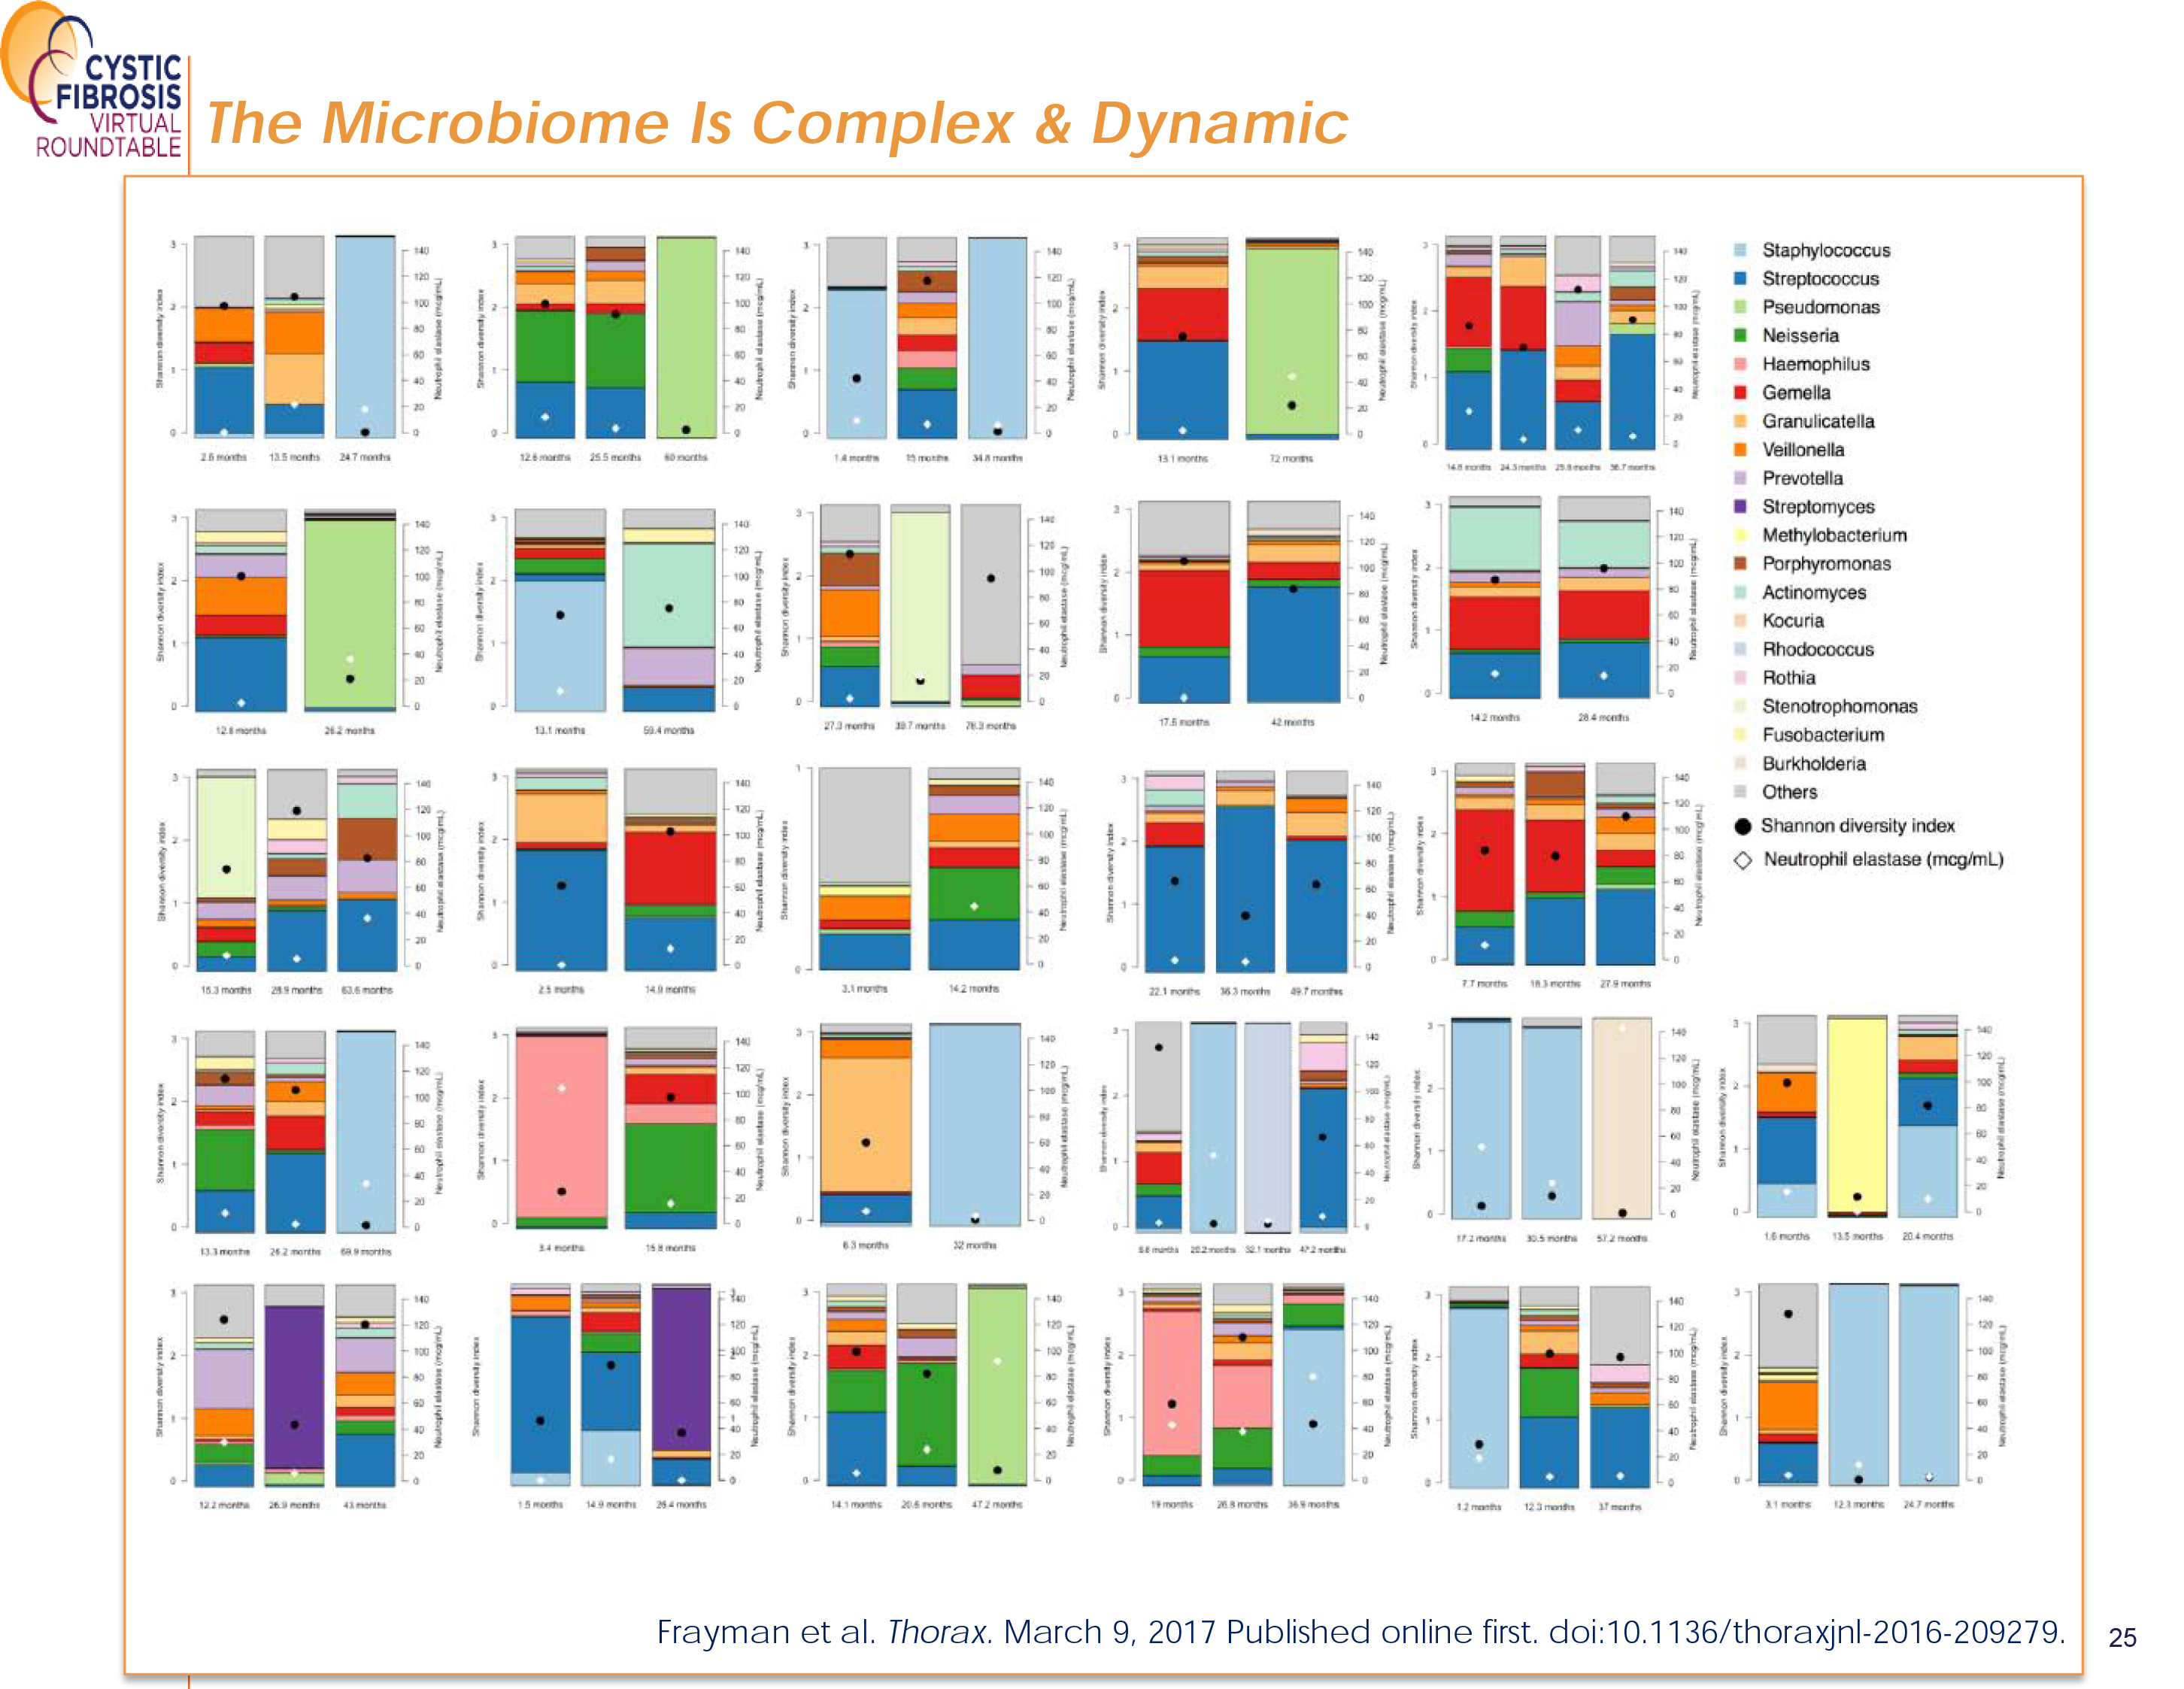 The Microbiome is Complex and Dynamic